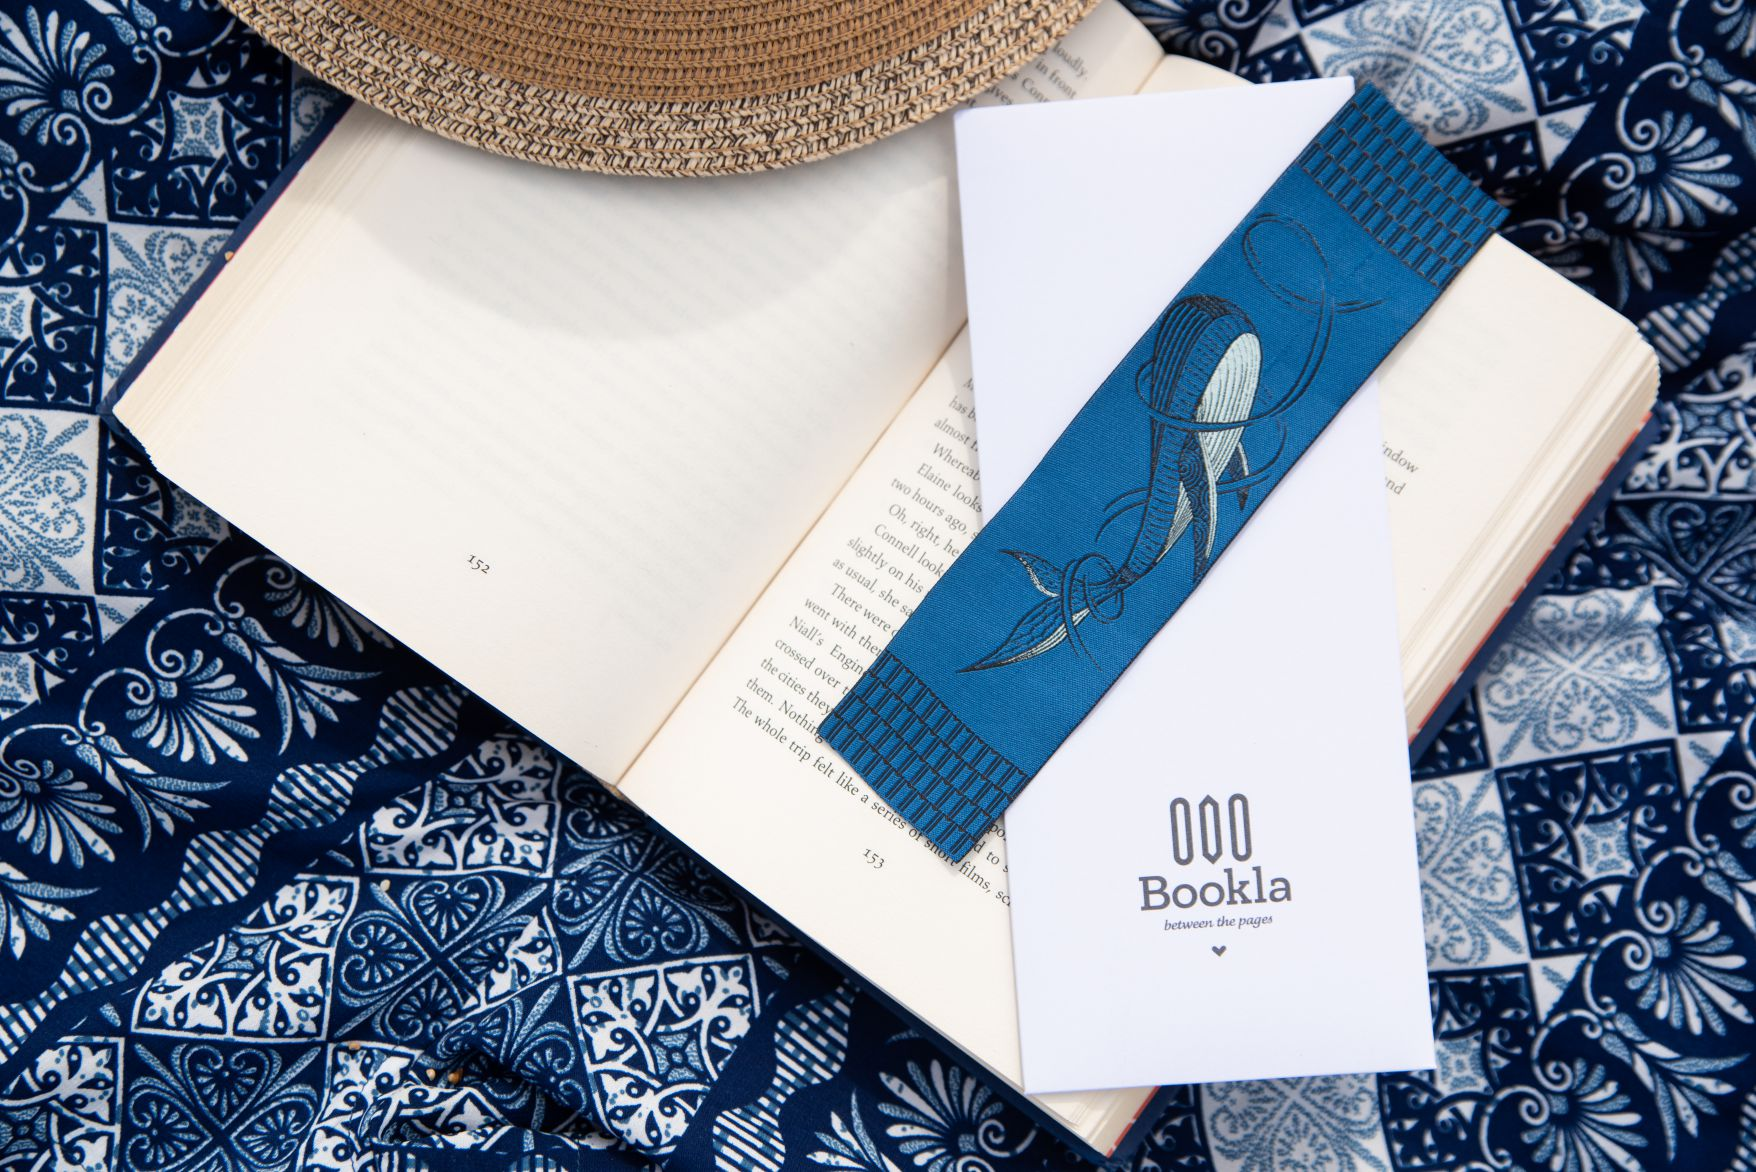 Whale bookmarks by Bookla Bookmarks